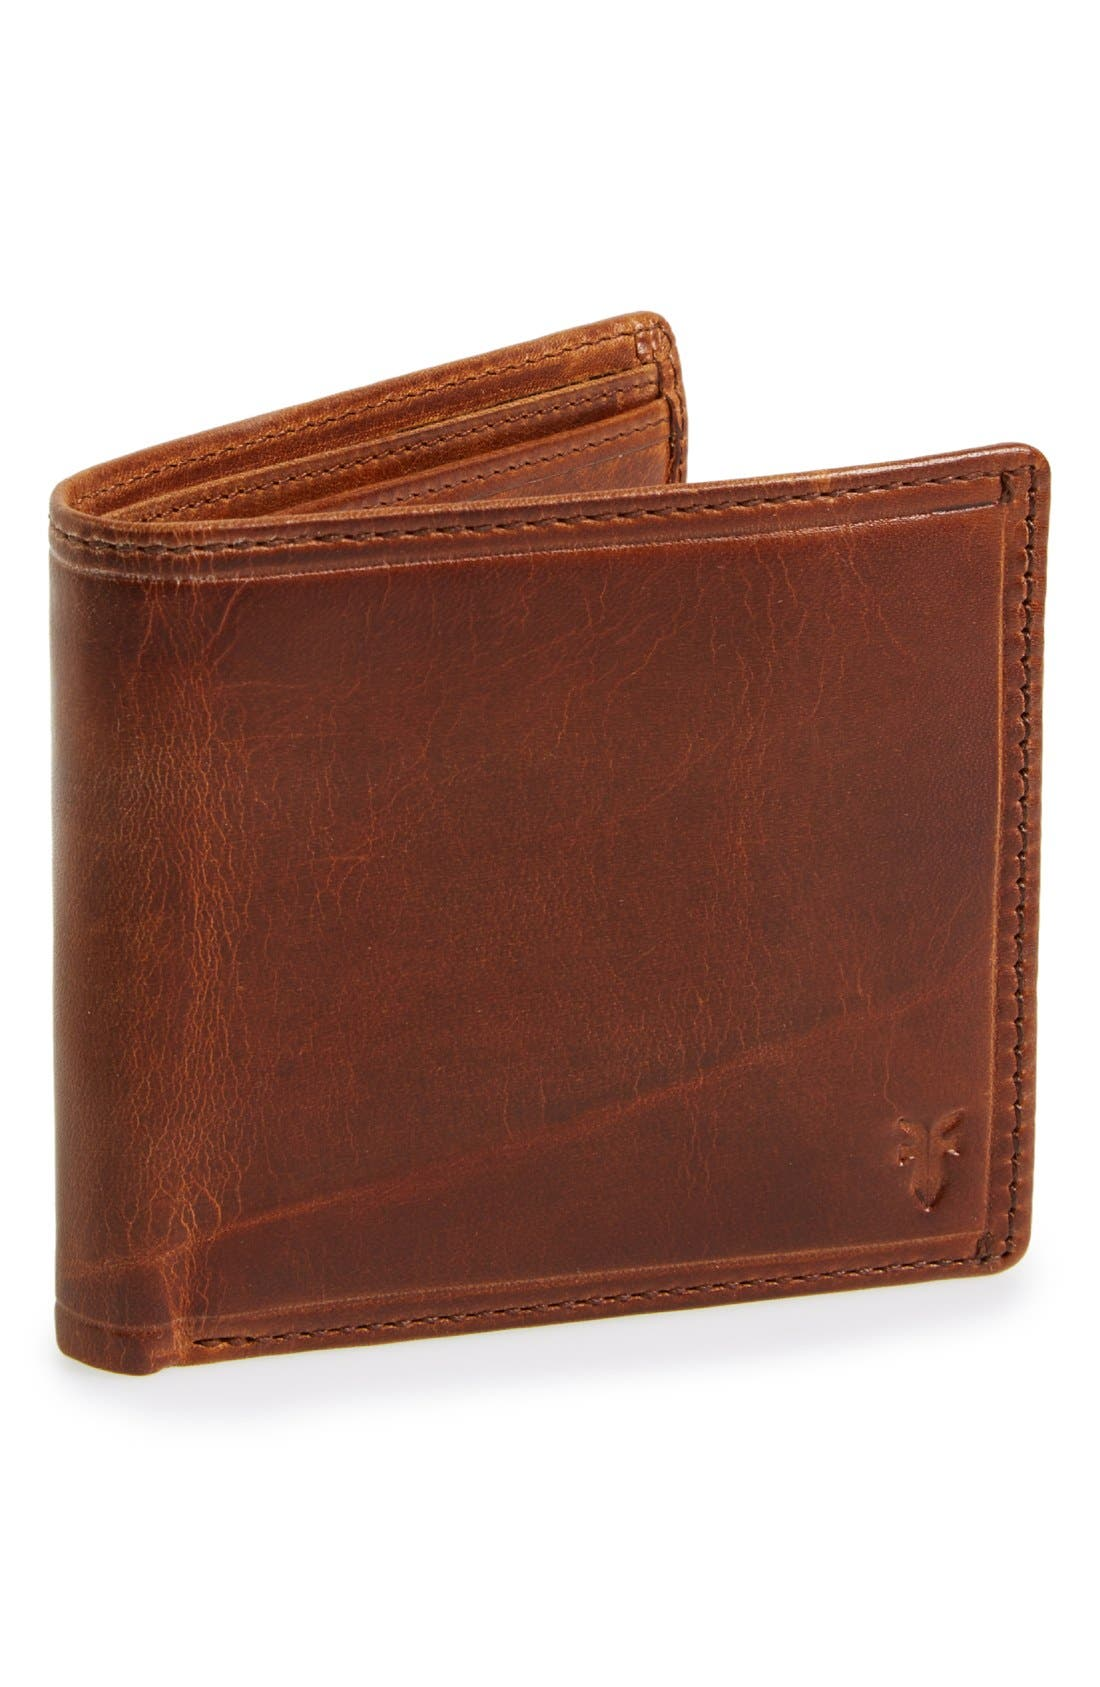 'Logan' Leather Billfold Wallet,                         Main,                         color, Cognac